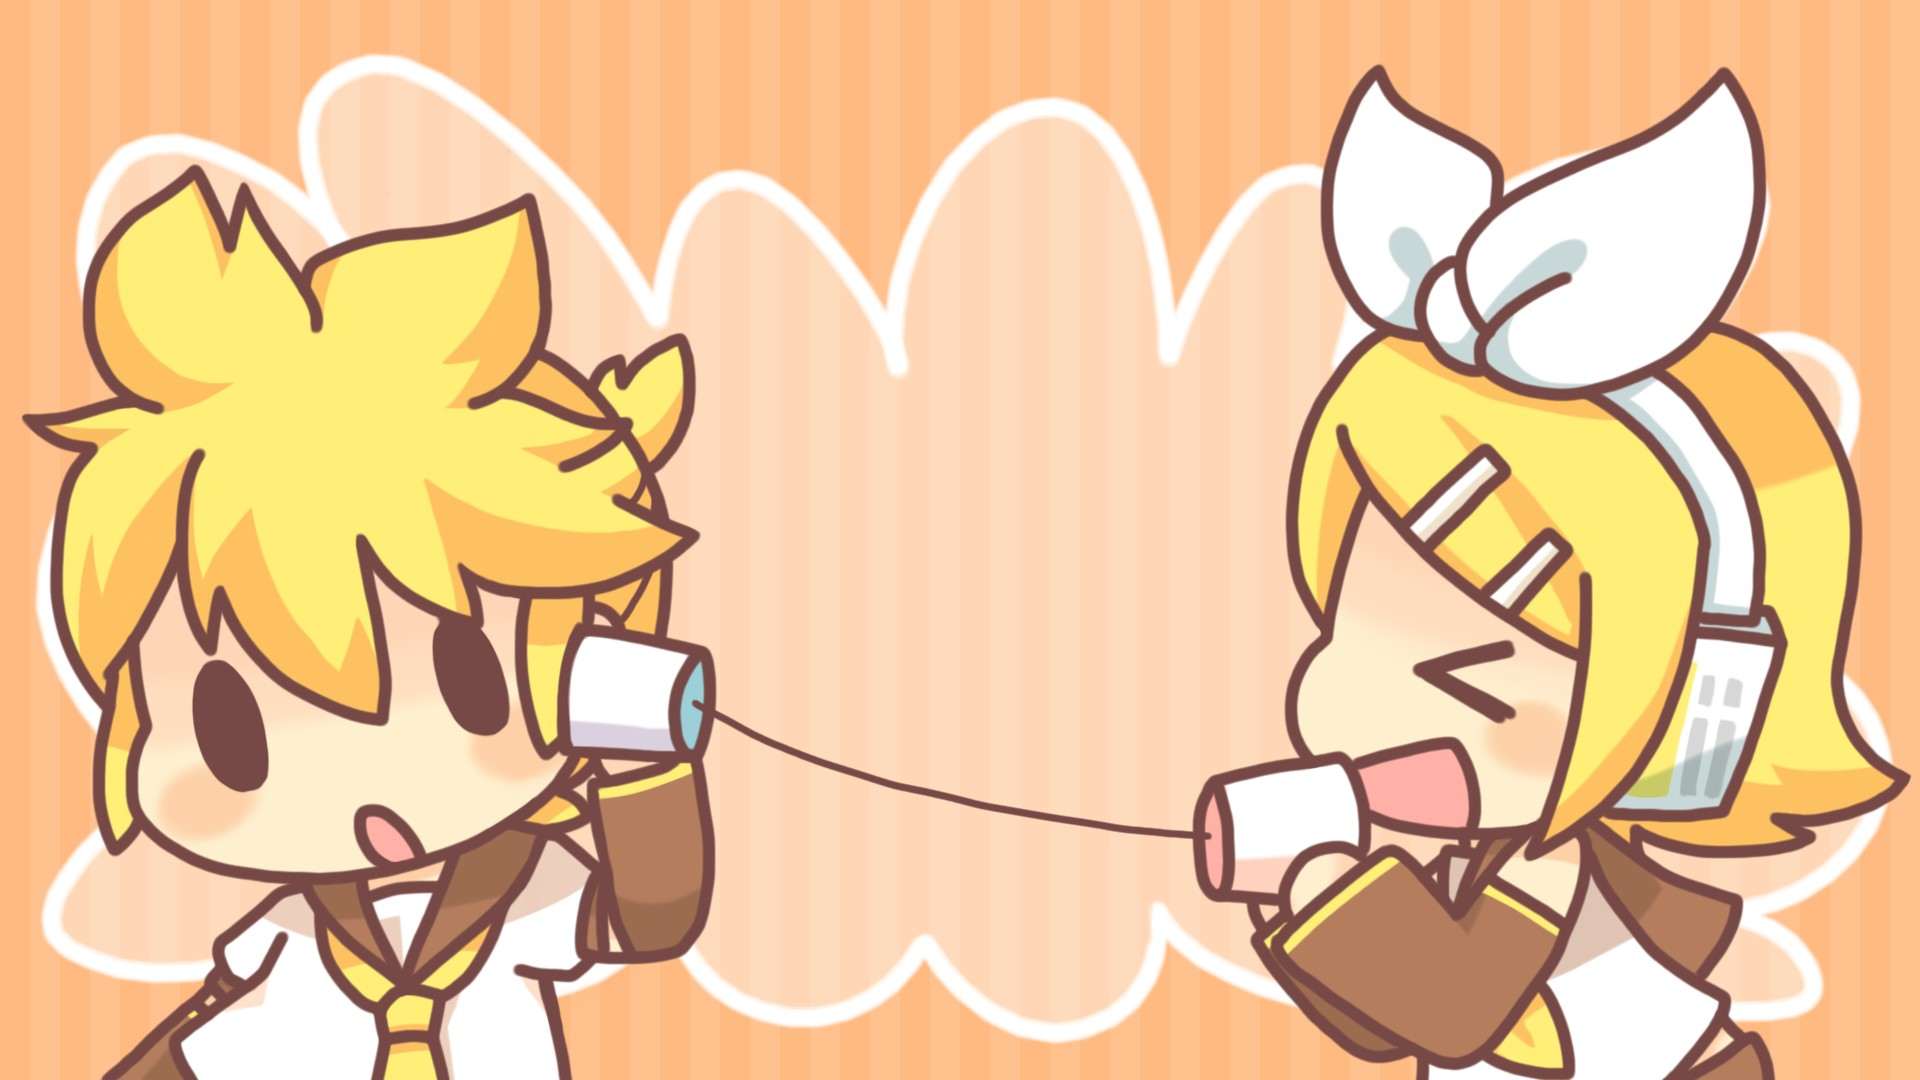 Kagamine Mirrors Vocaloid Hd Wallpaper 1117062 Zerochan Anime